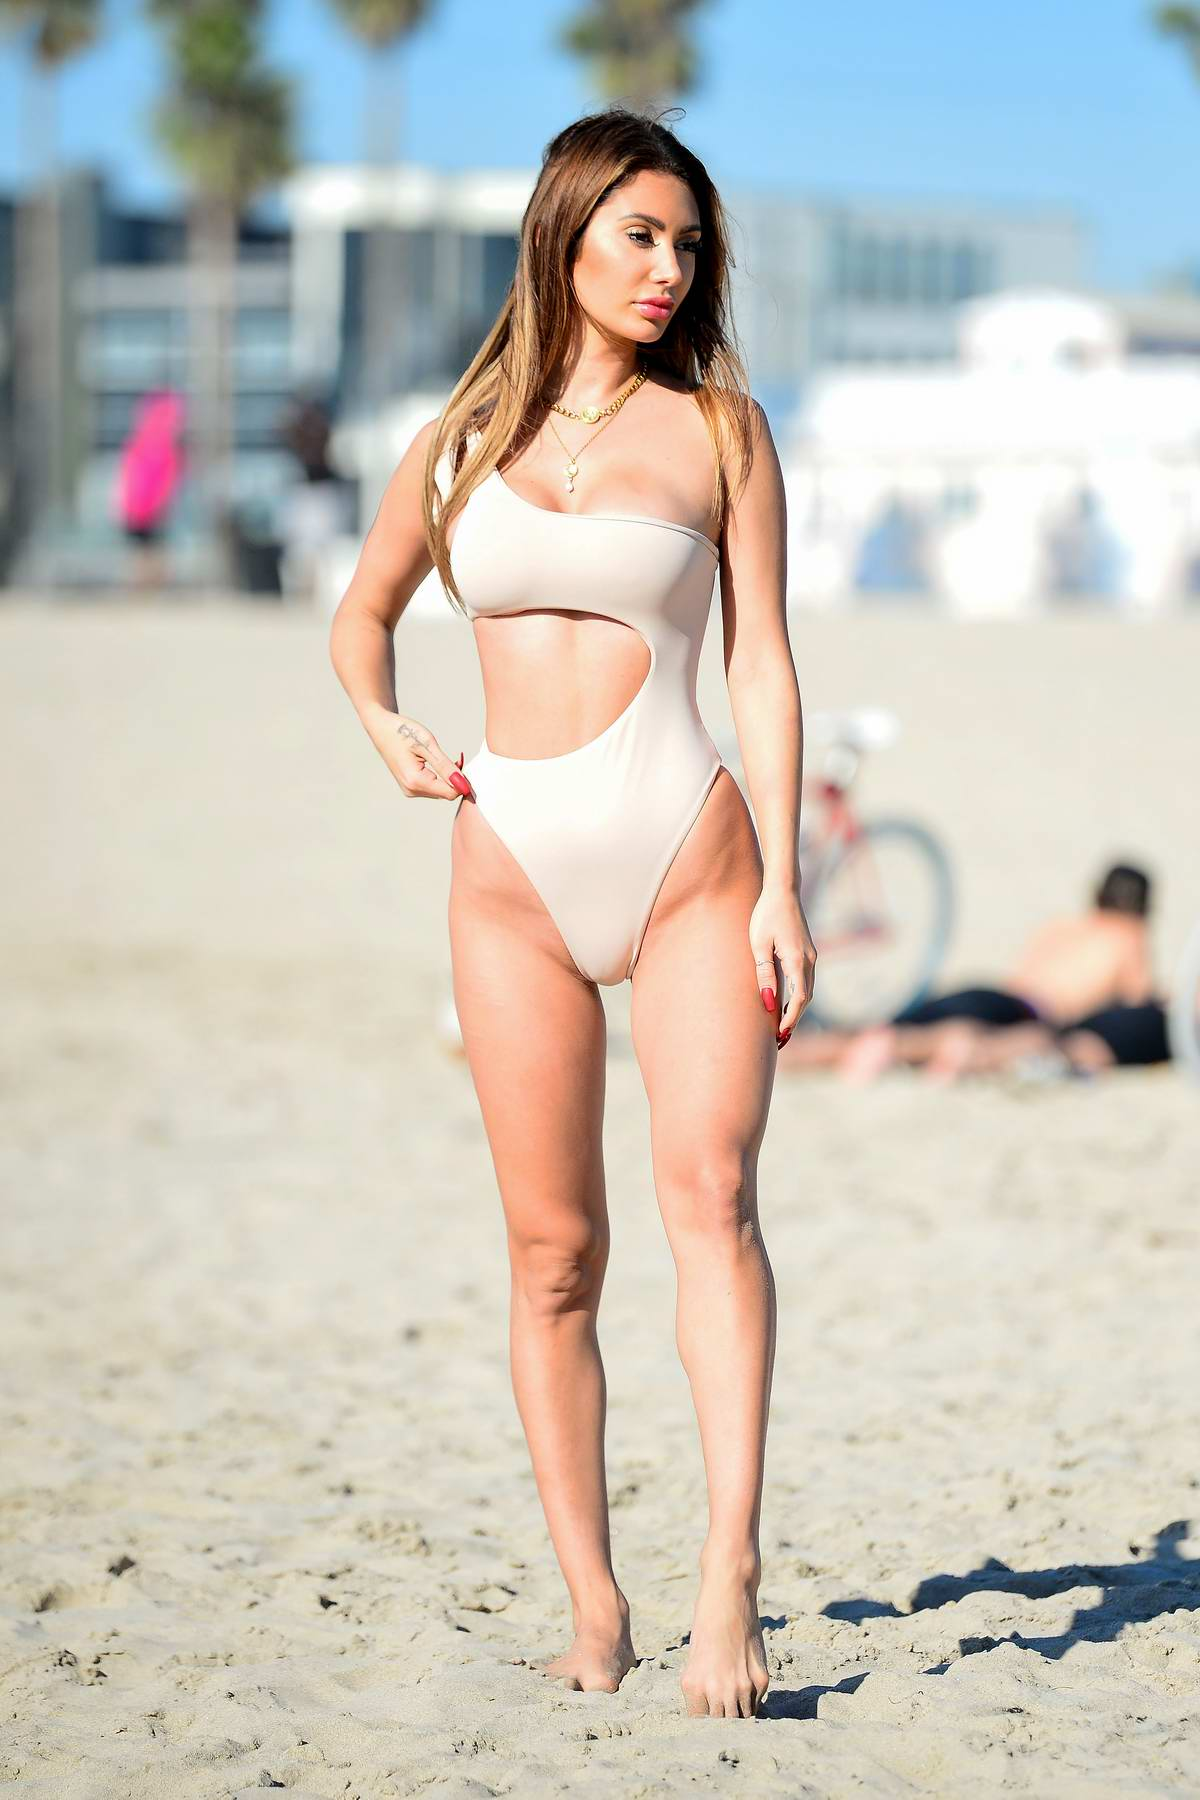 Francesca Farago shows off her bikini body at the beach during a photoshoot for her new collection in Venice, California